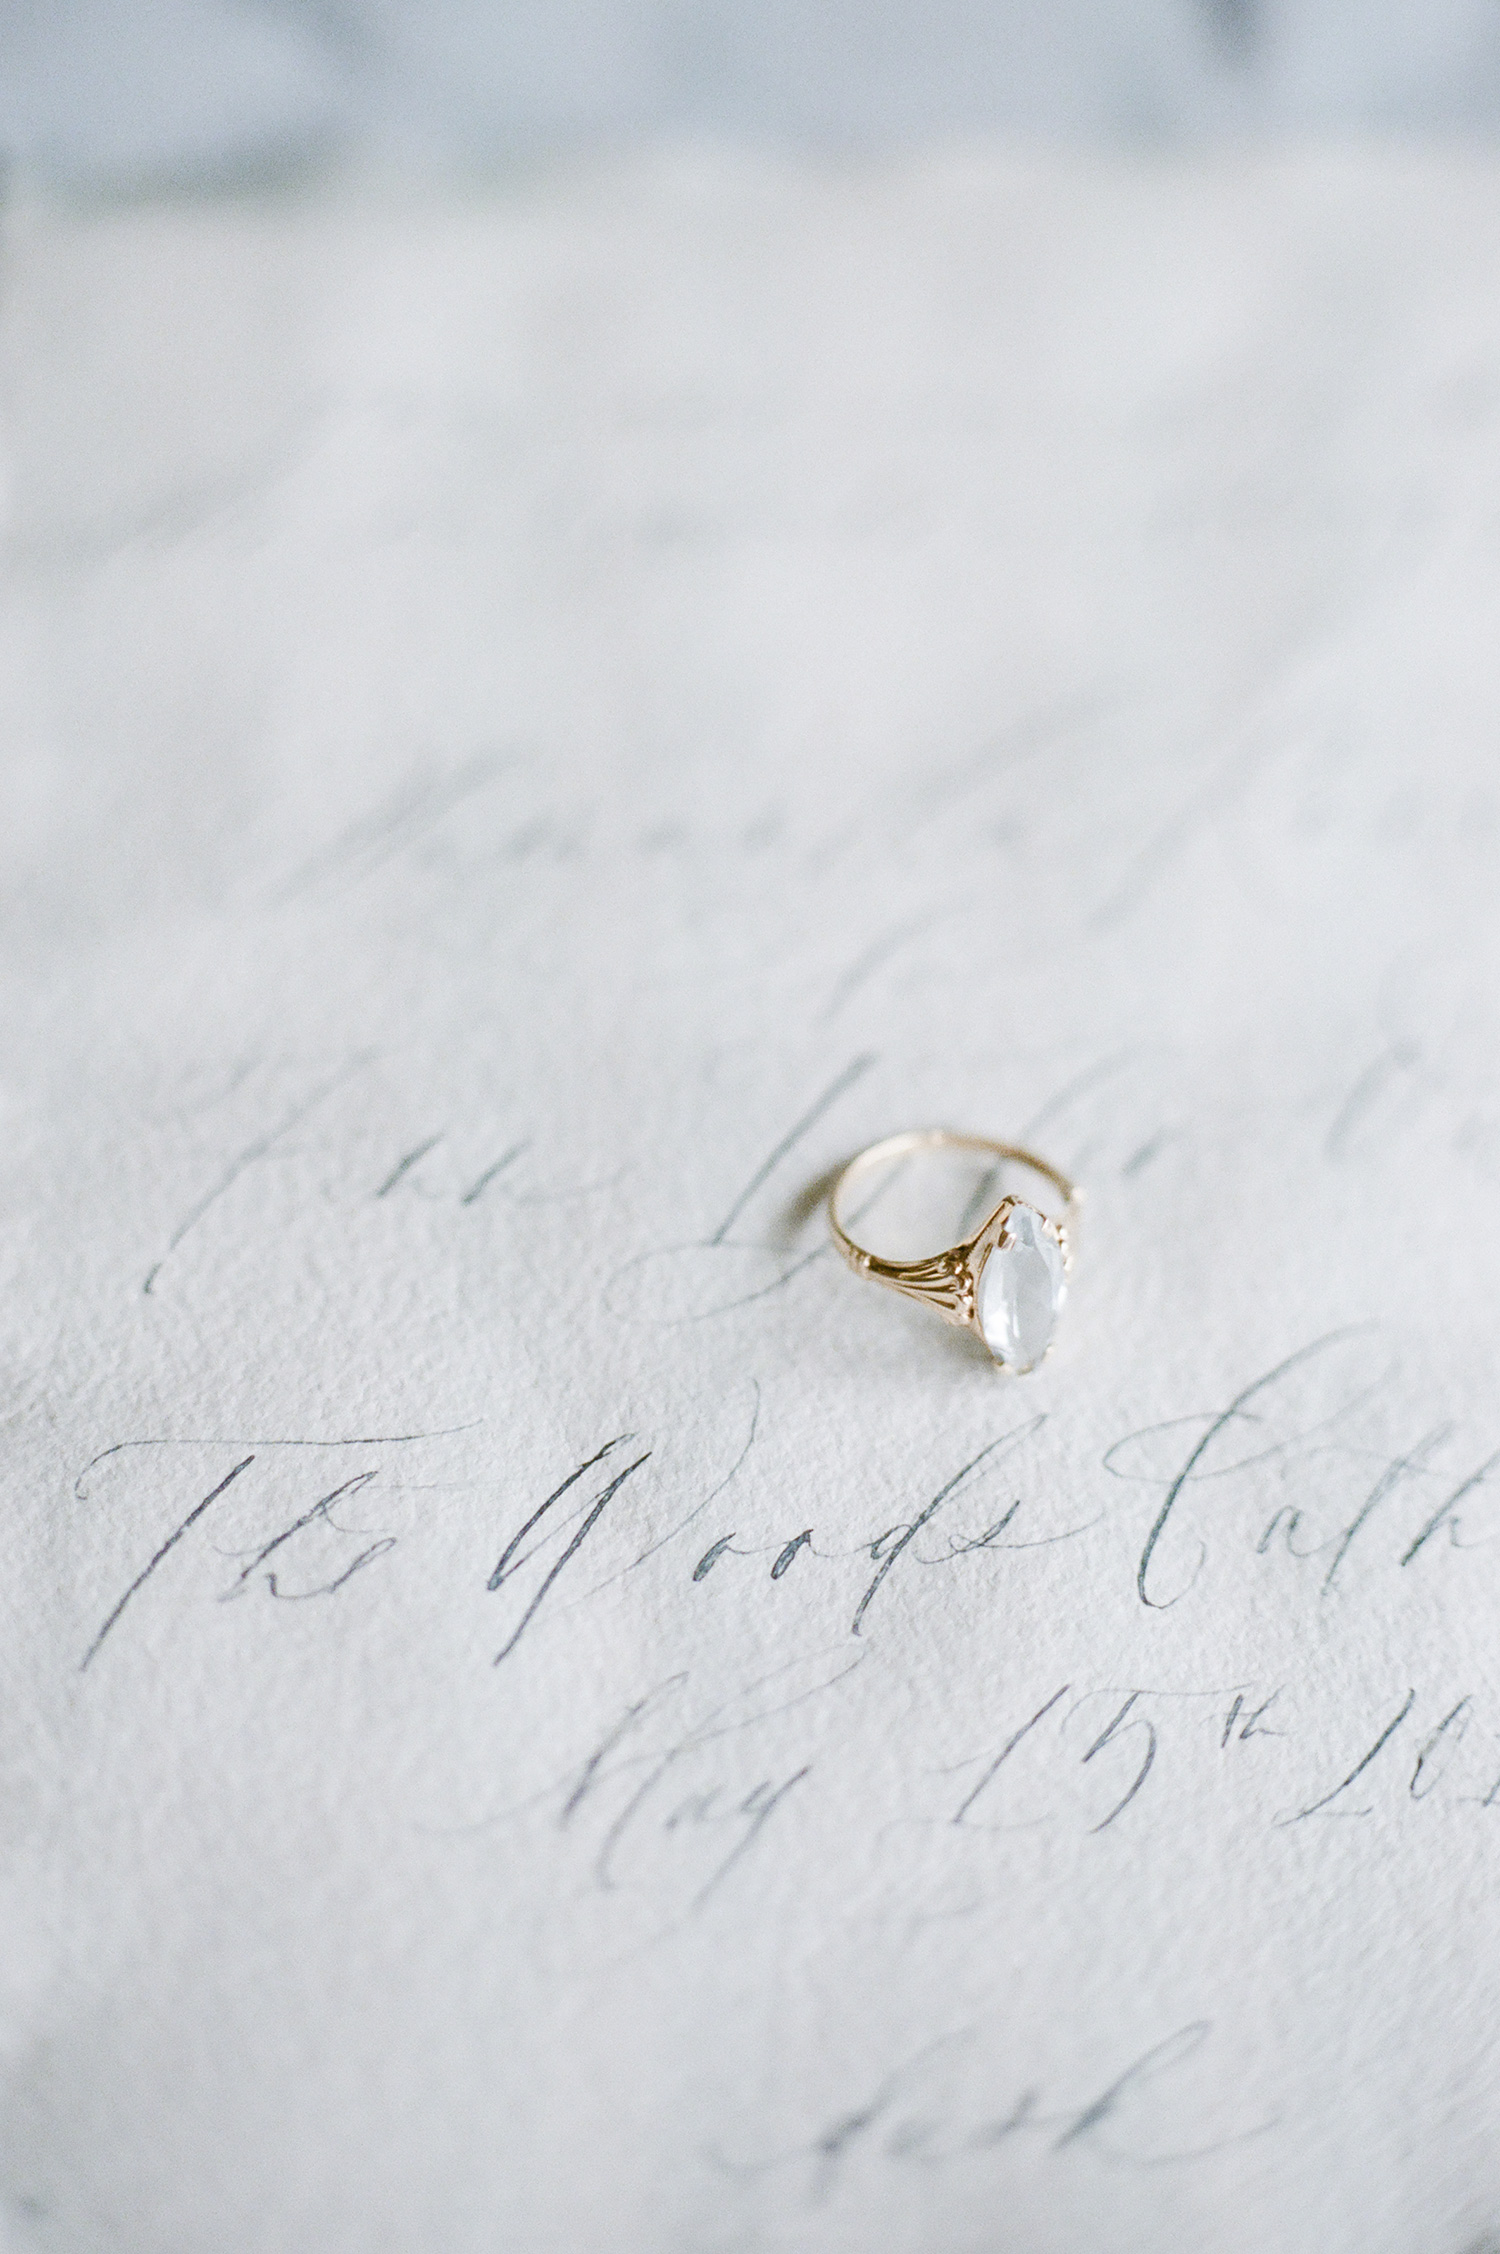 An antique marquise aquamarine and yellow gold ring rests on a blue handmade paper and calligraphy destination wedding invitation